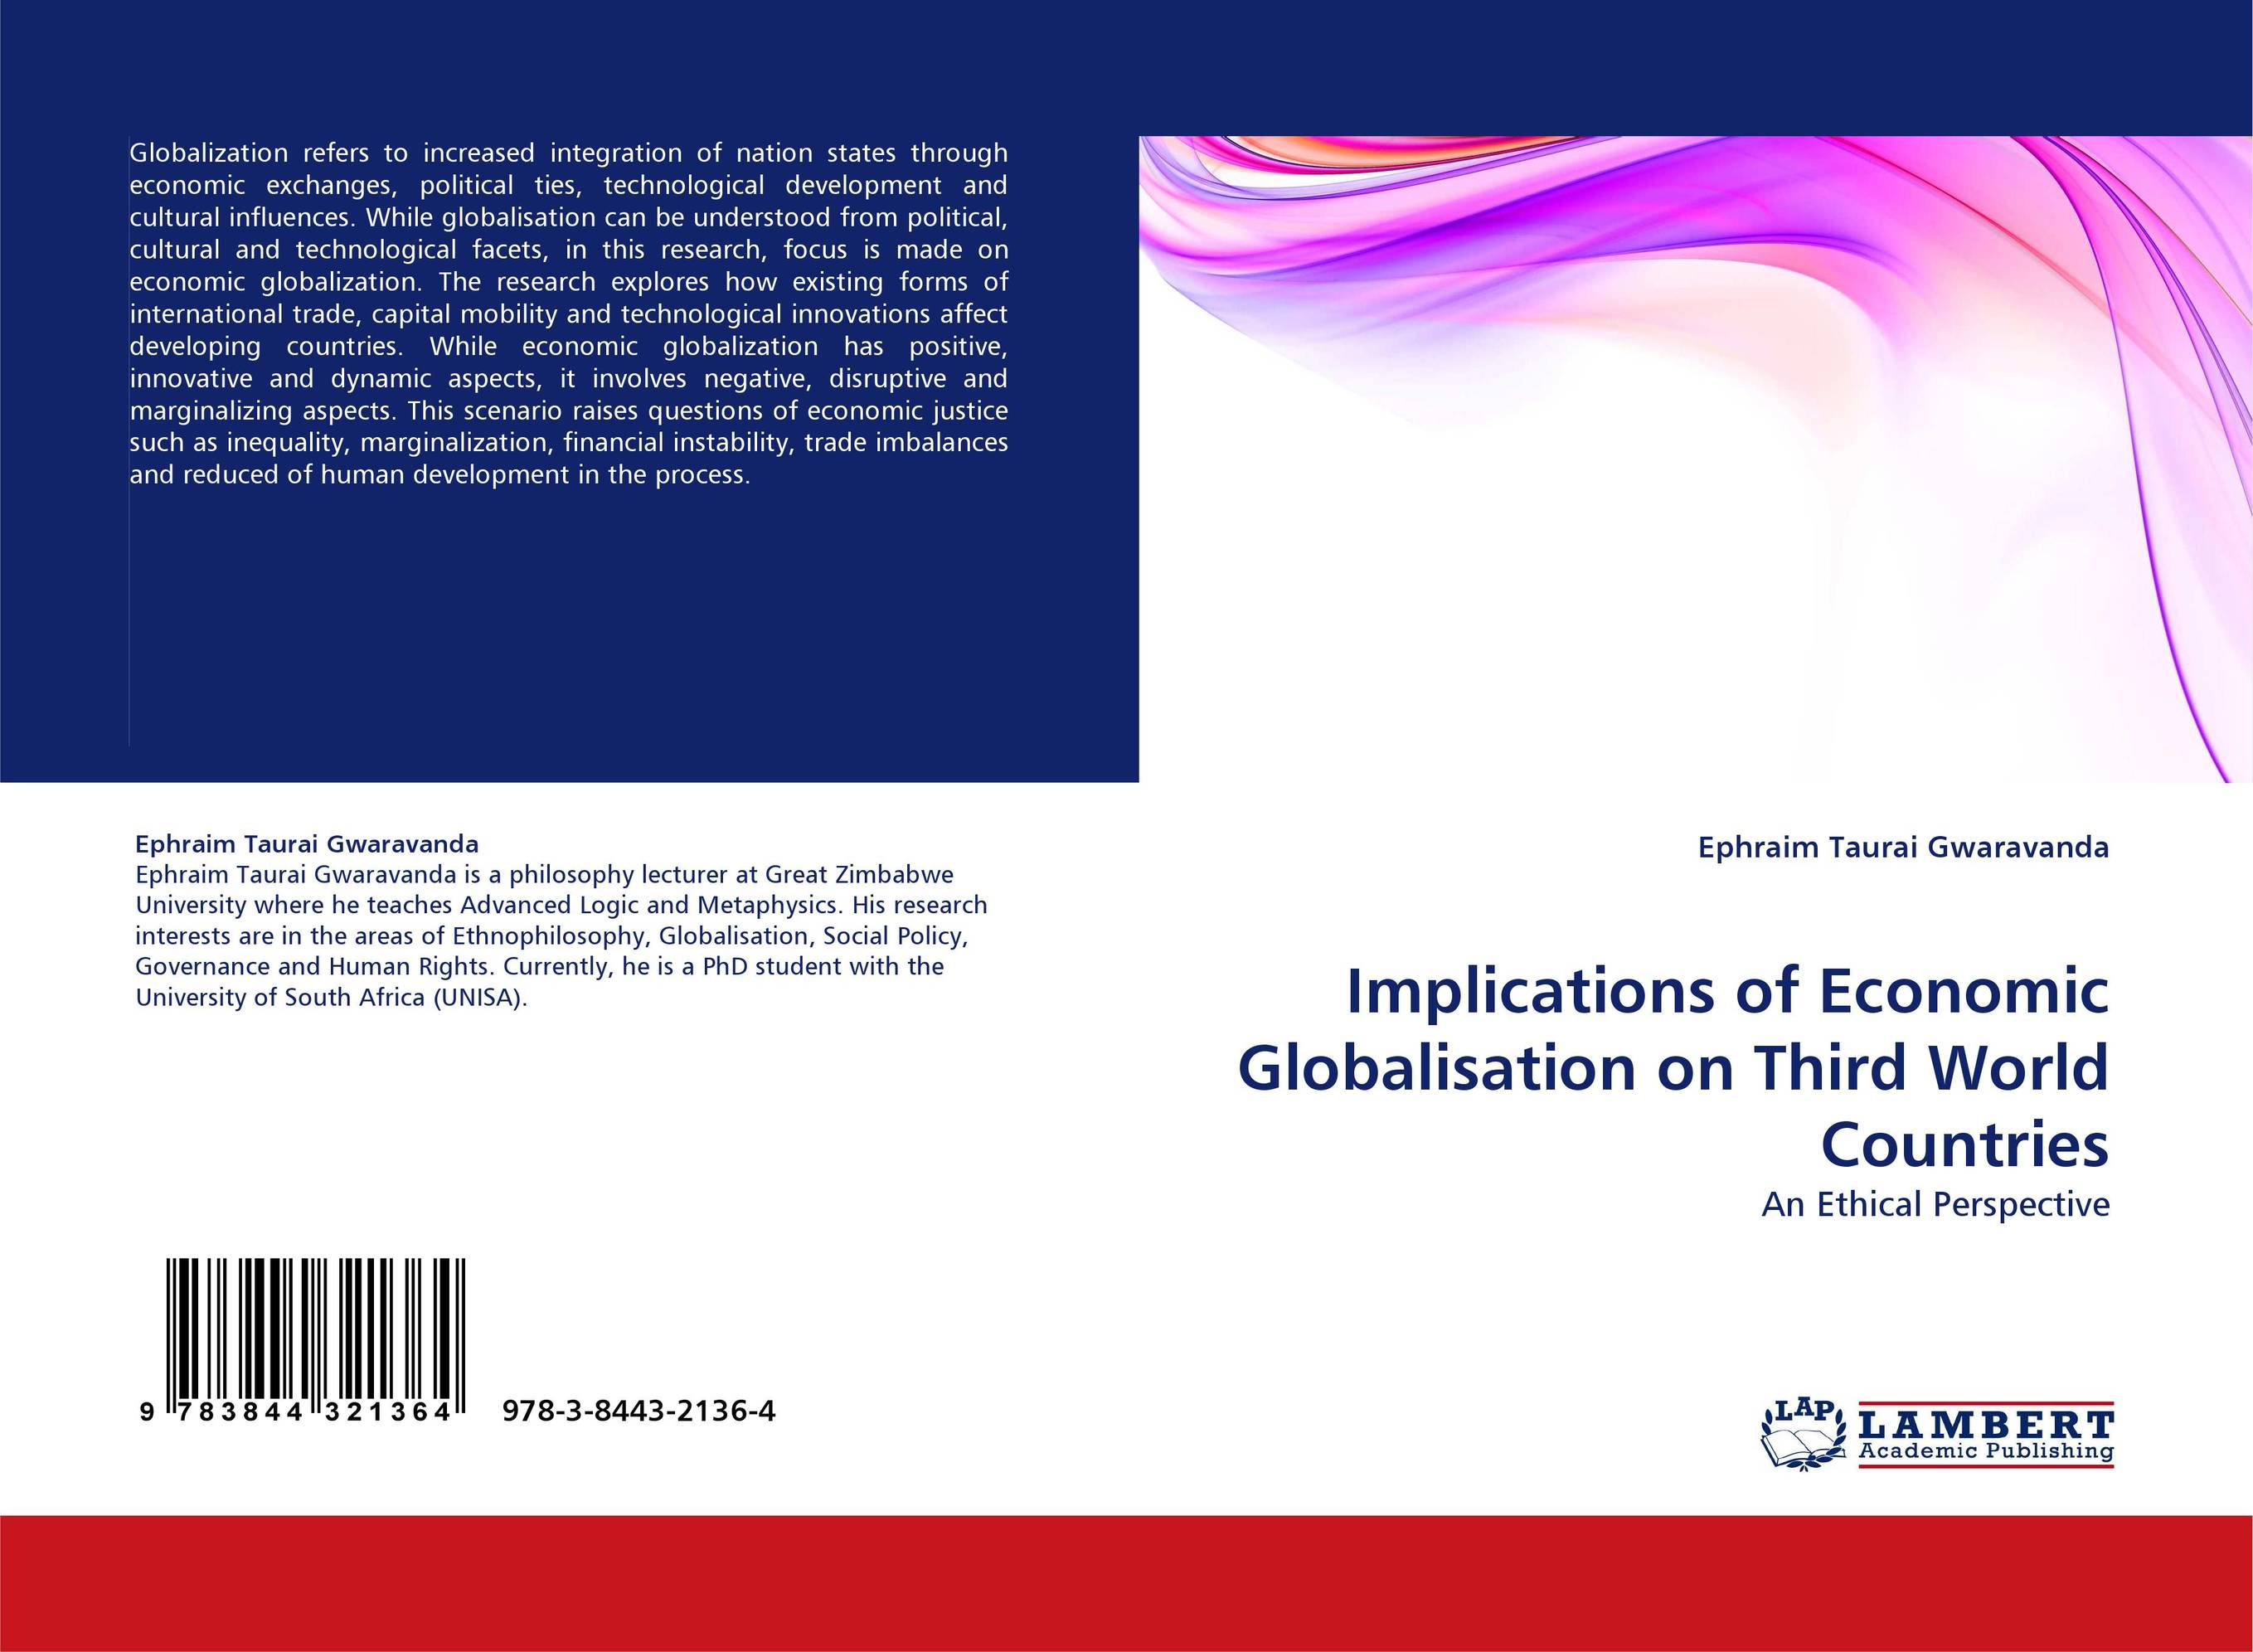 what is ethical implications of businesses polluting in a third world countries Write up on problem of poverty and pollution in third world countries in apa format with a page limit of 10-12 pages addressing question – q1determine the ethical implications of businesses polluting in a third world country.